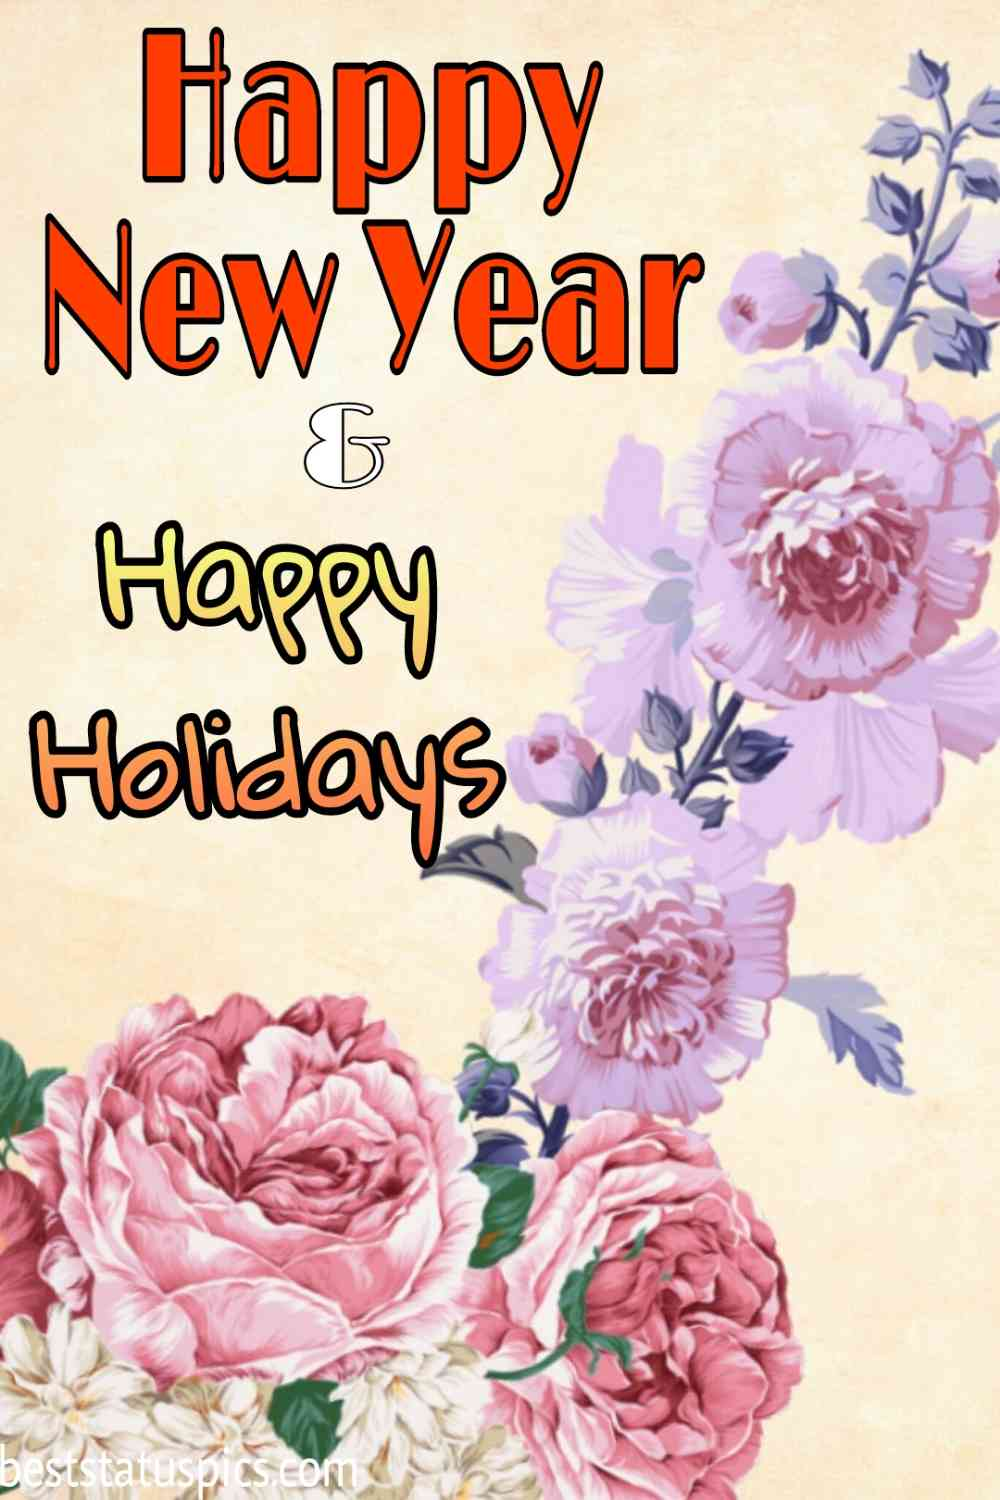 Happy Holidays Happy New Year 2022 images with flowers and roses for Pinterest